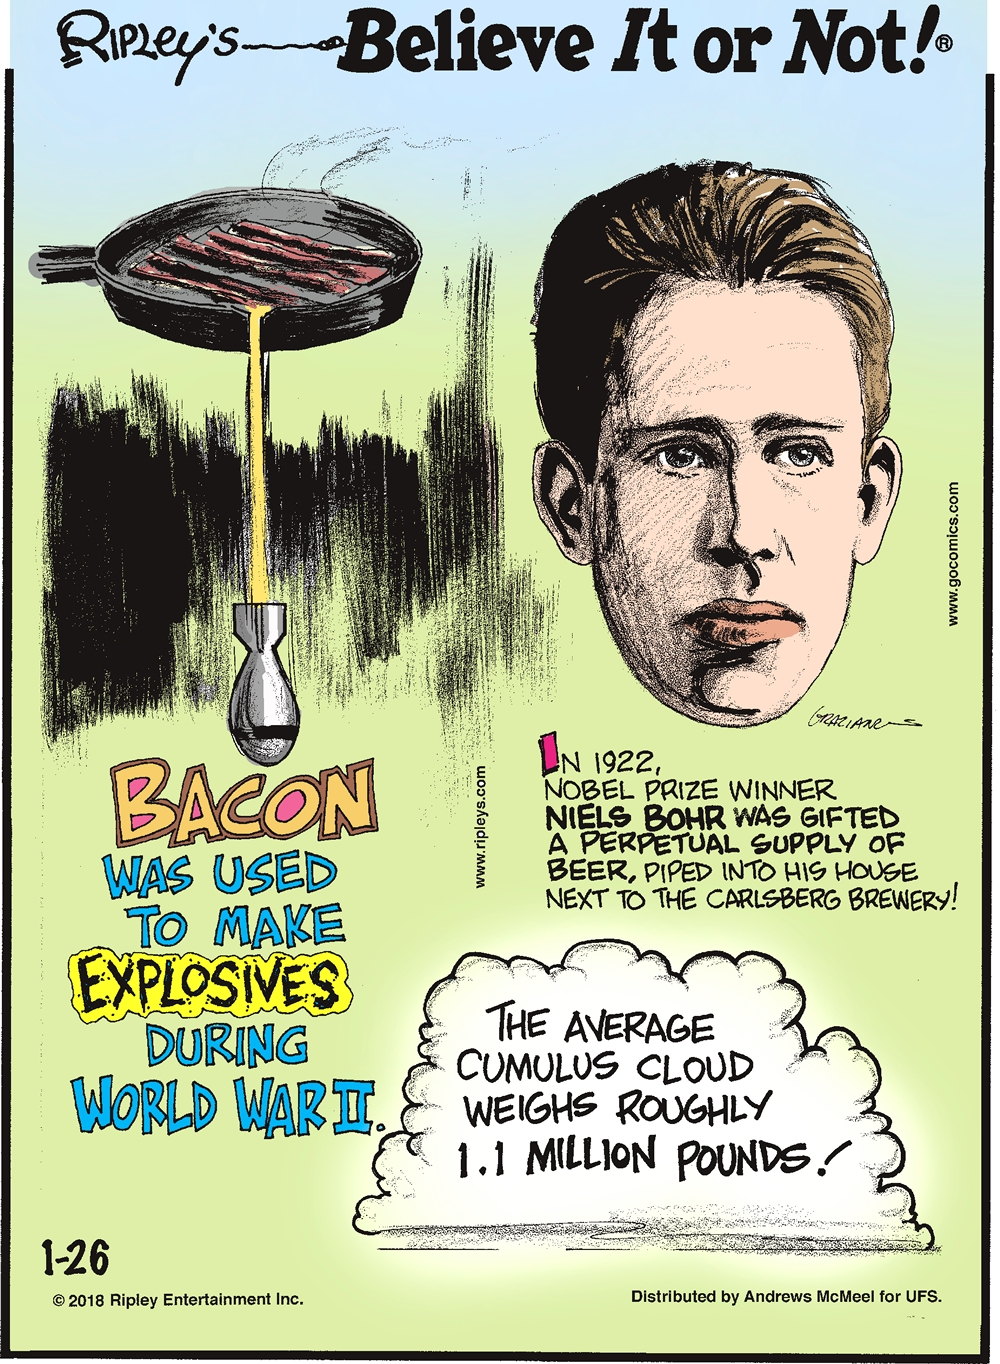 Bacon was used to make explosives during World War II.-------------------- In 1922, Nobel Prize Winner Niels Bohr was gifted a perpetual supply of beer, piped into his house next to the Carlsberg Brewery!-------------------- The average cumulus cloud weighs roughly 1.1 million pounds!